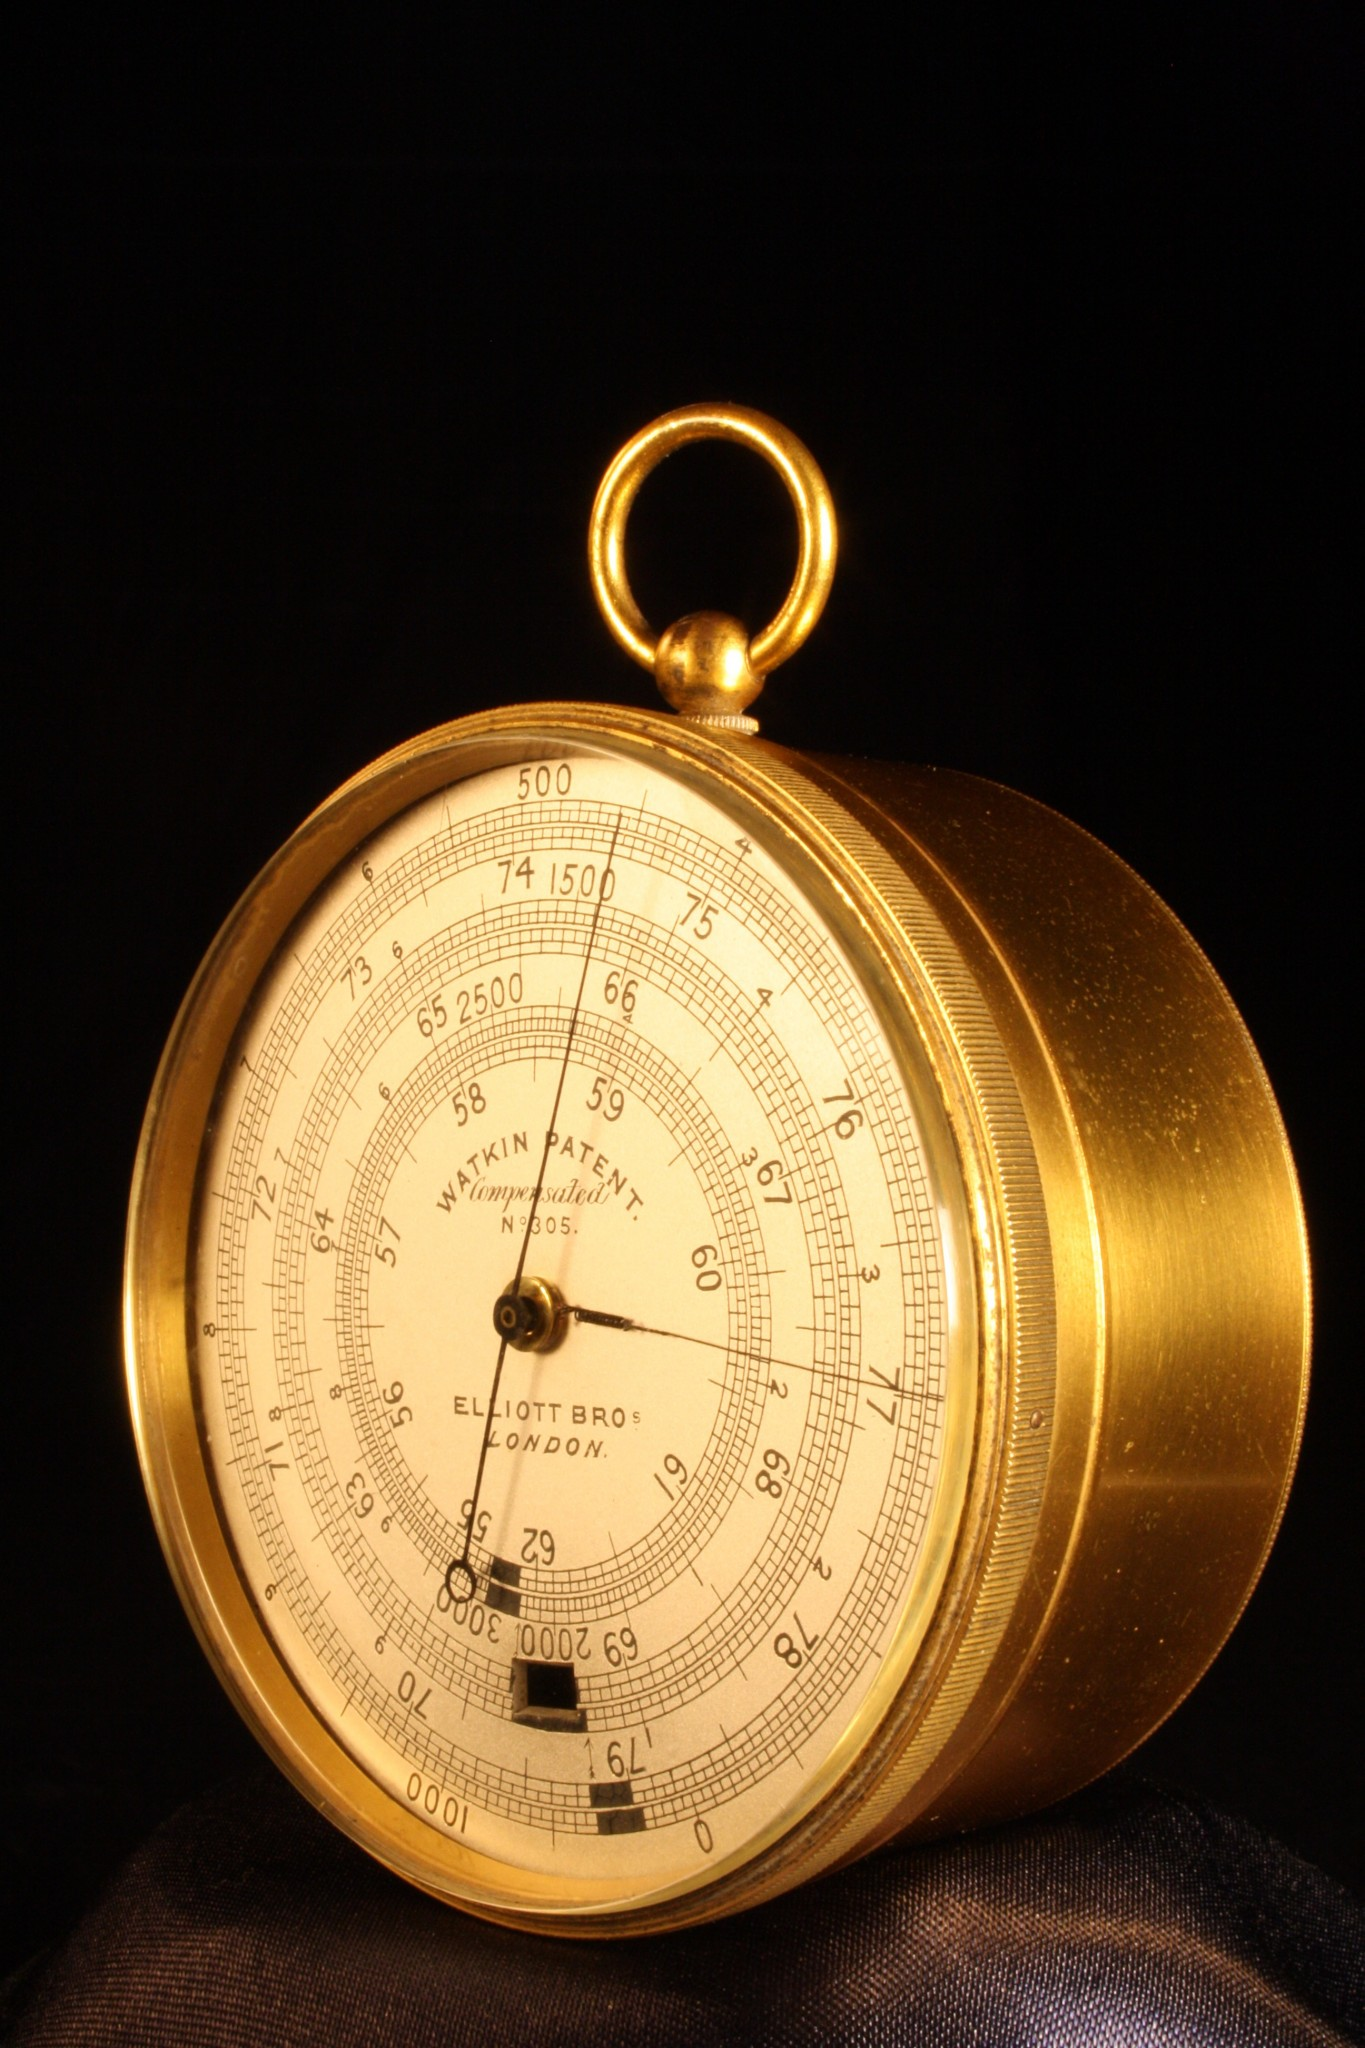 Image of Watkin Patent Altimeter by Hicks No 305